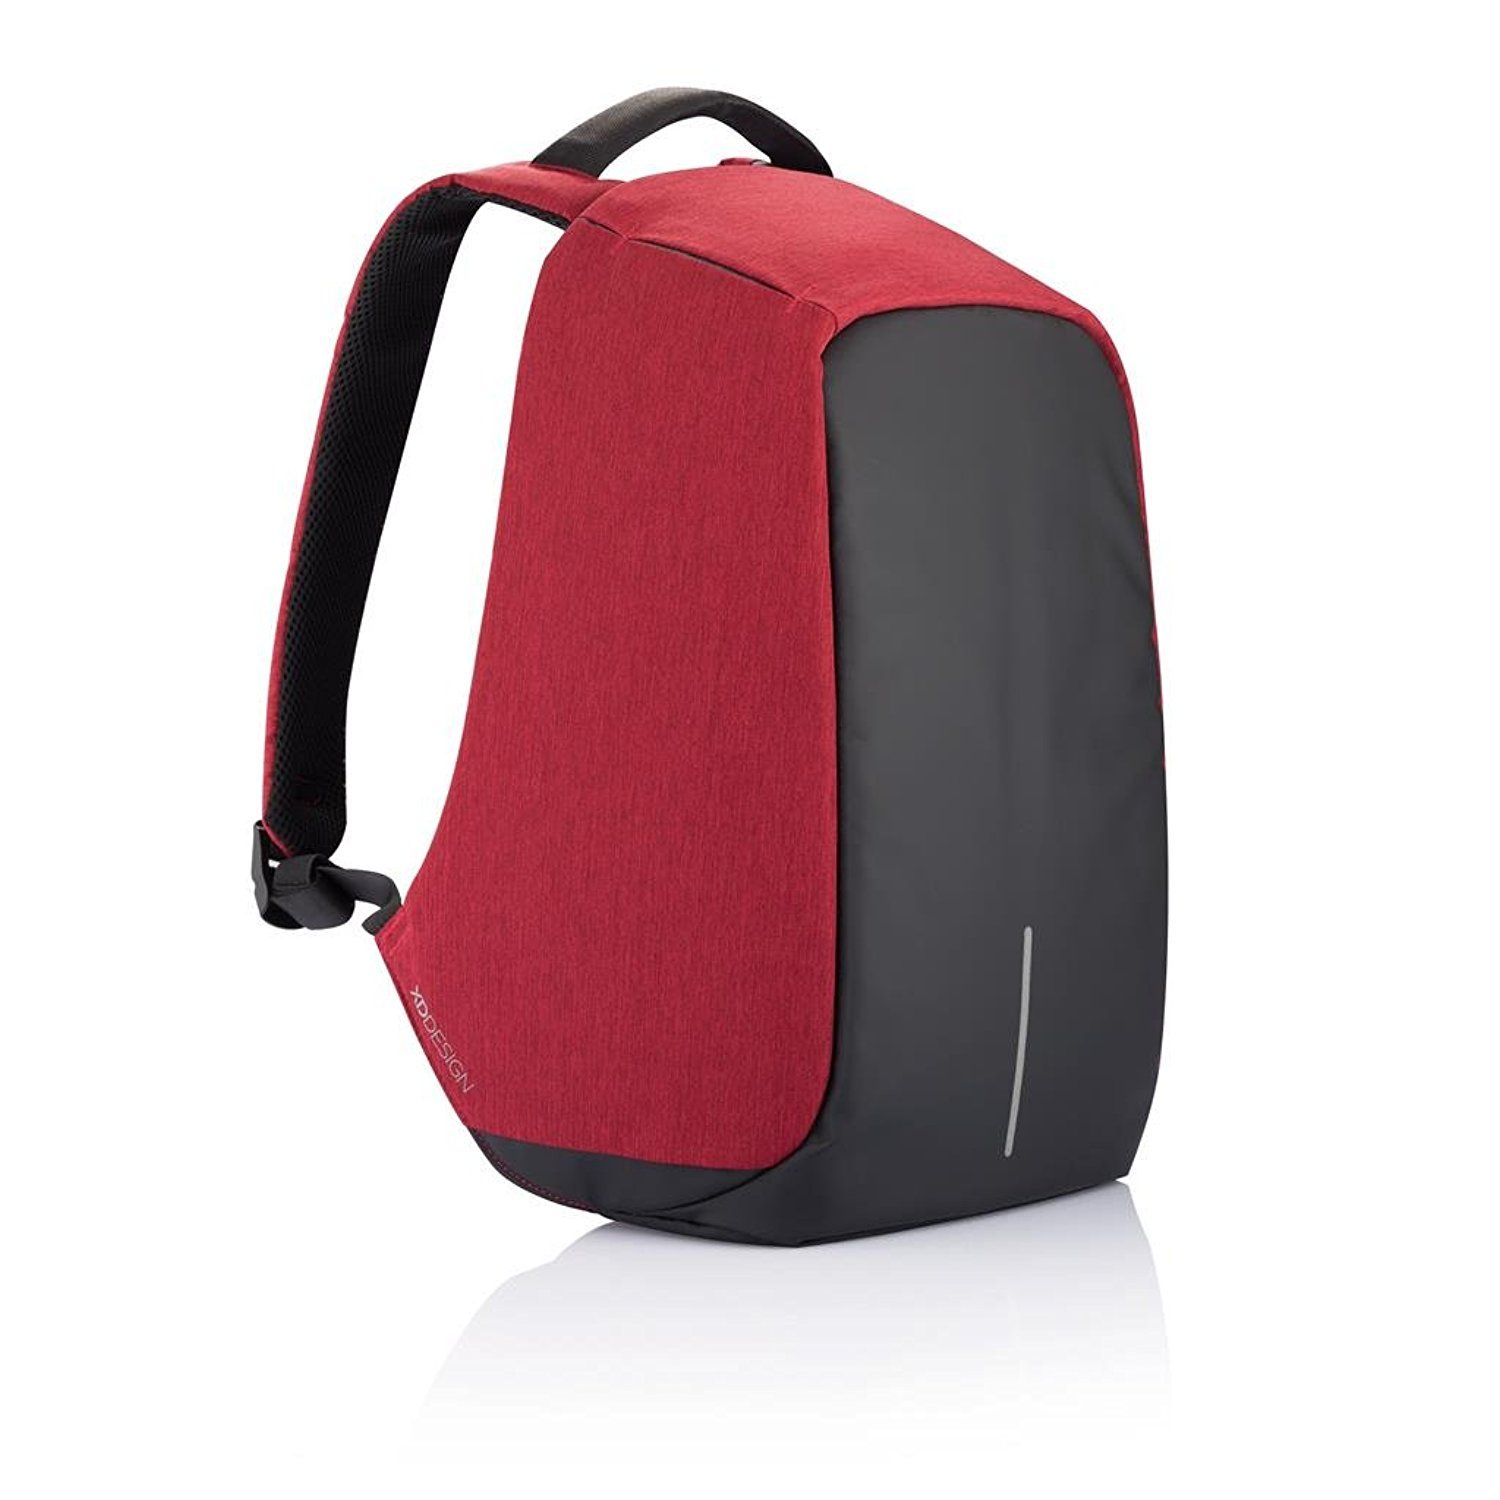 The Original Bobby Anti-theft Backpack by XD Design - Red  9a53f5455426b